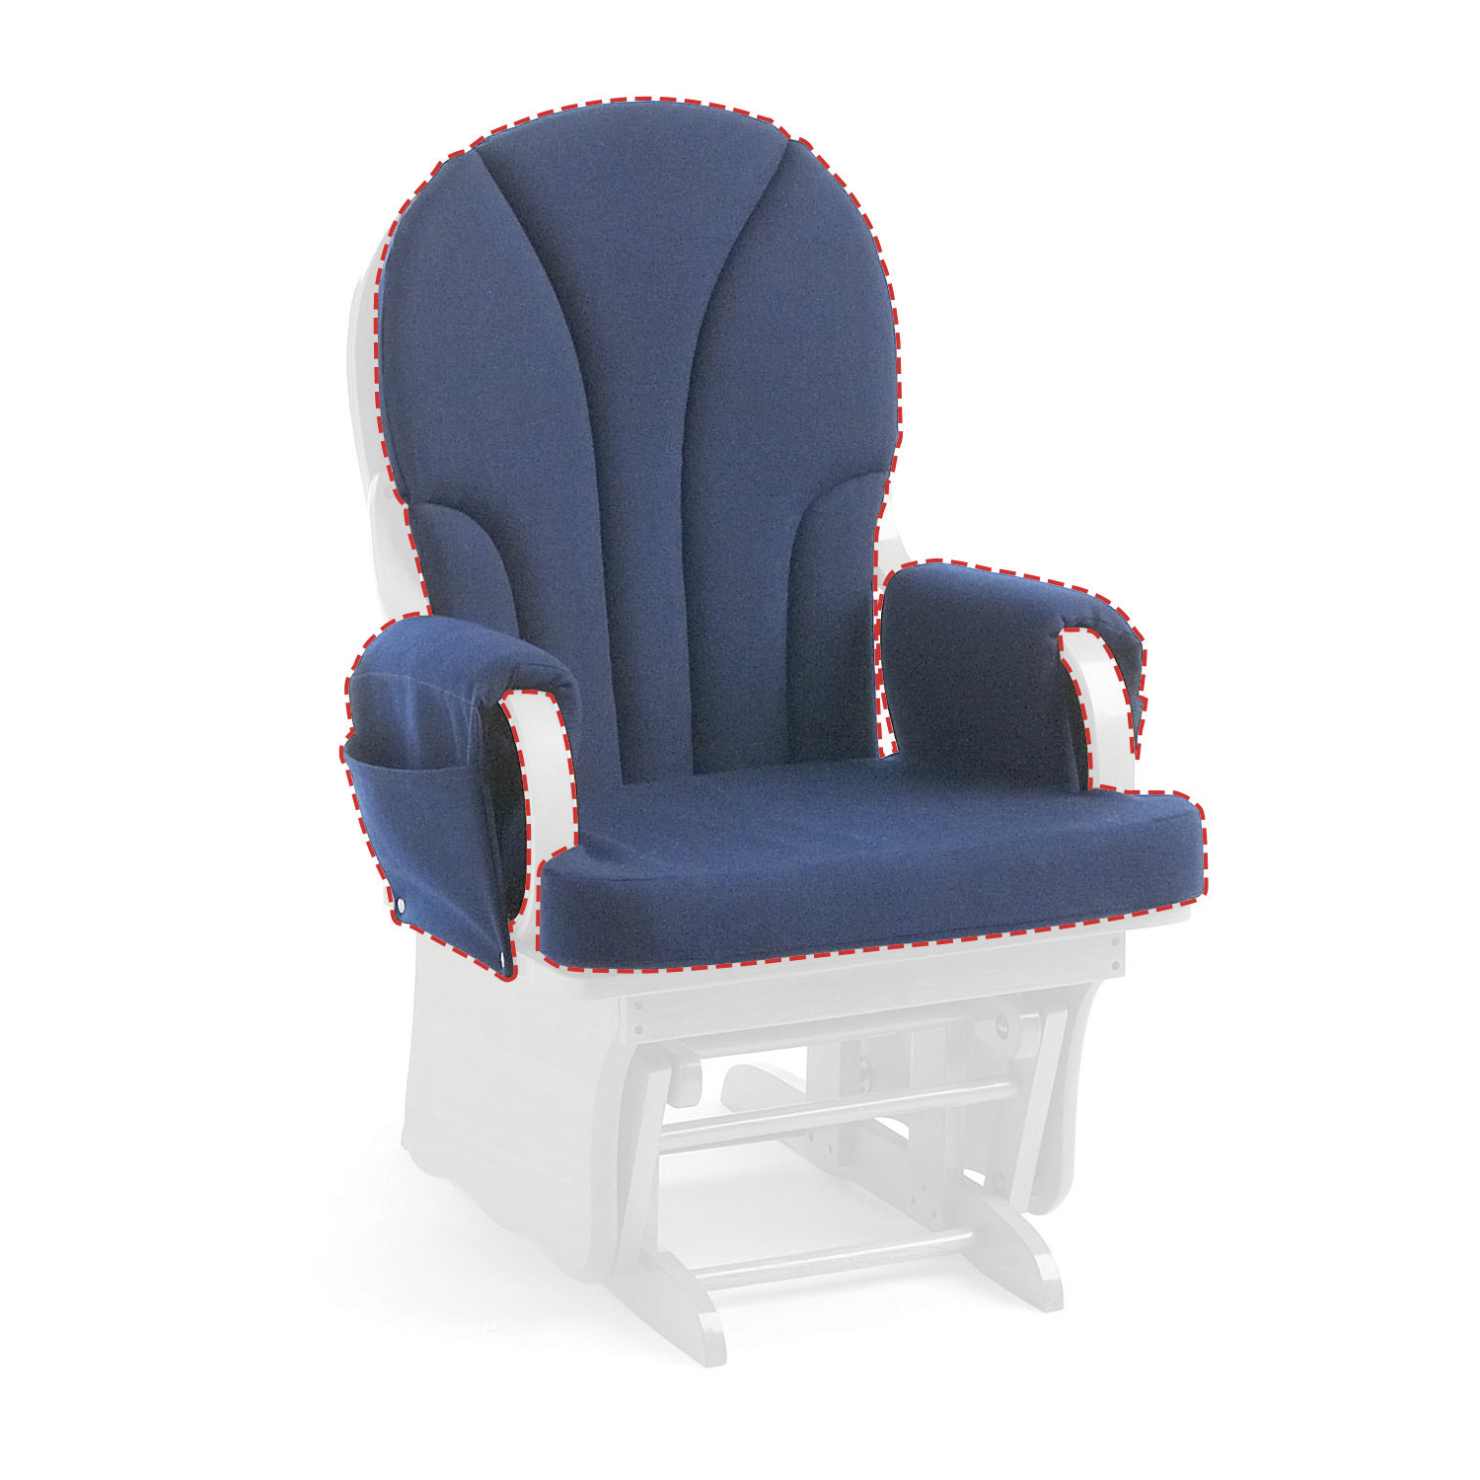 Katrina Blue Swivel Glider Chairs Intended For 2019 Foundations Replacement Cushion, Blue, For Use With Lullaby Glider (View 3 of 20)